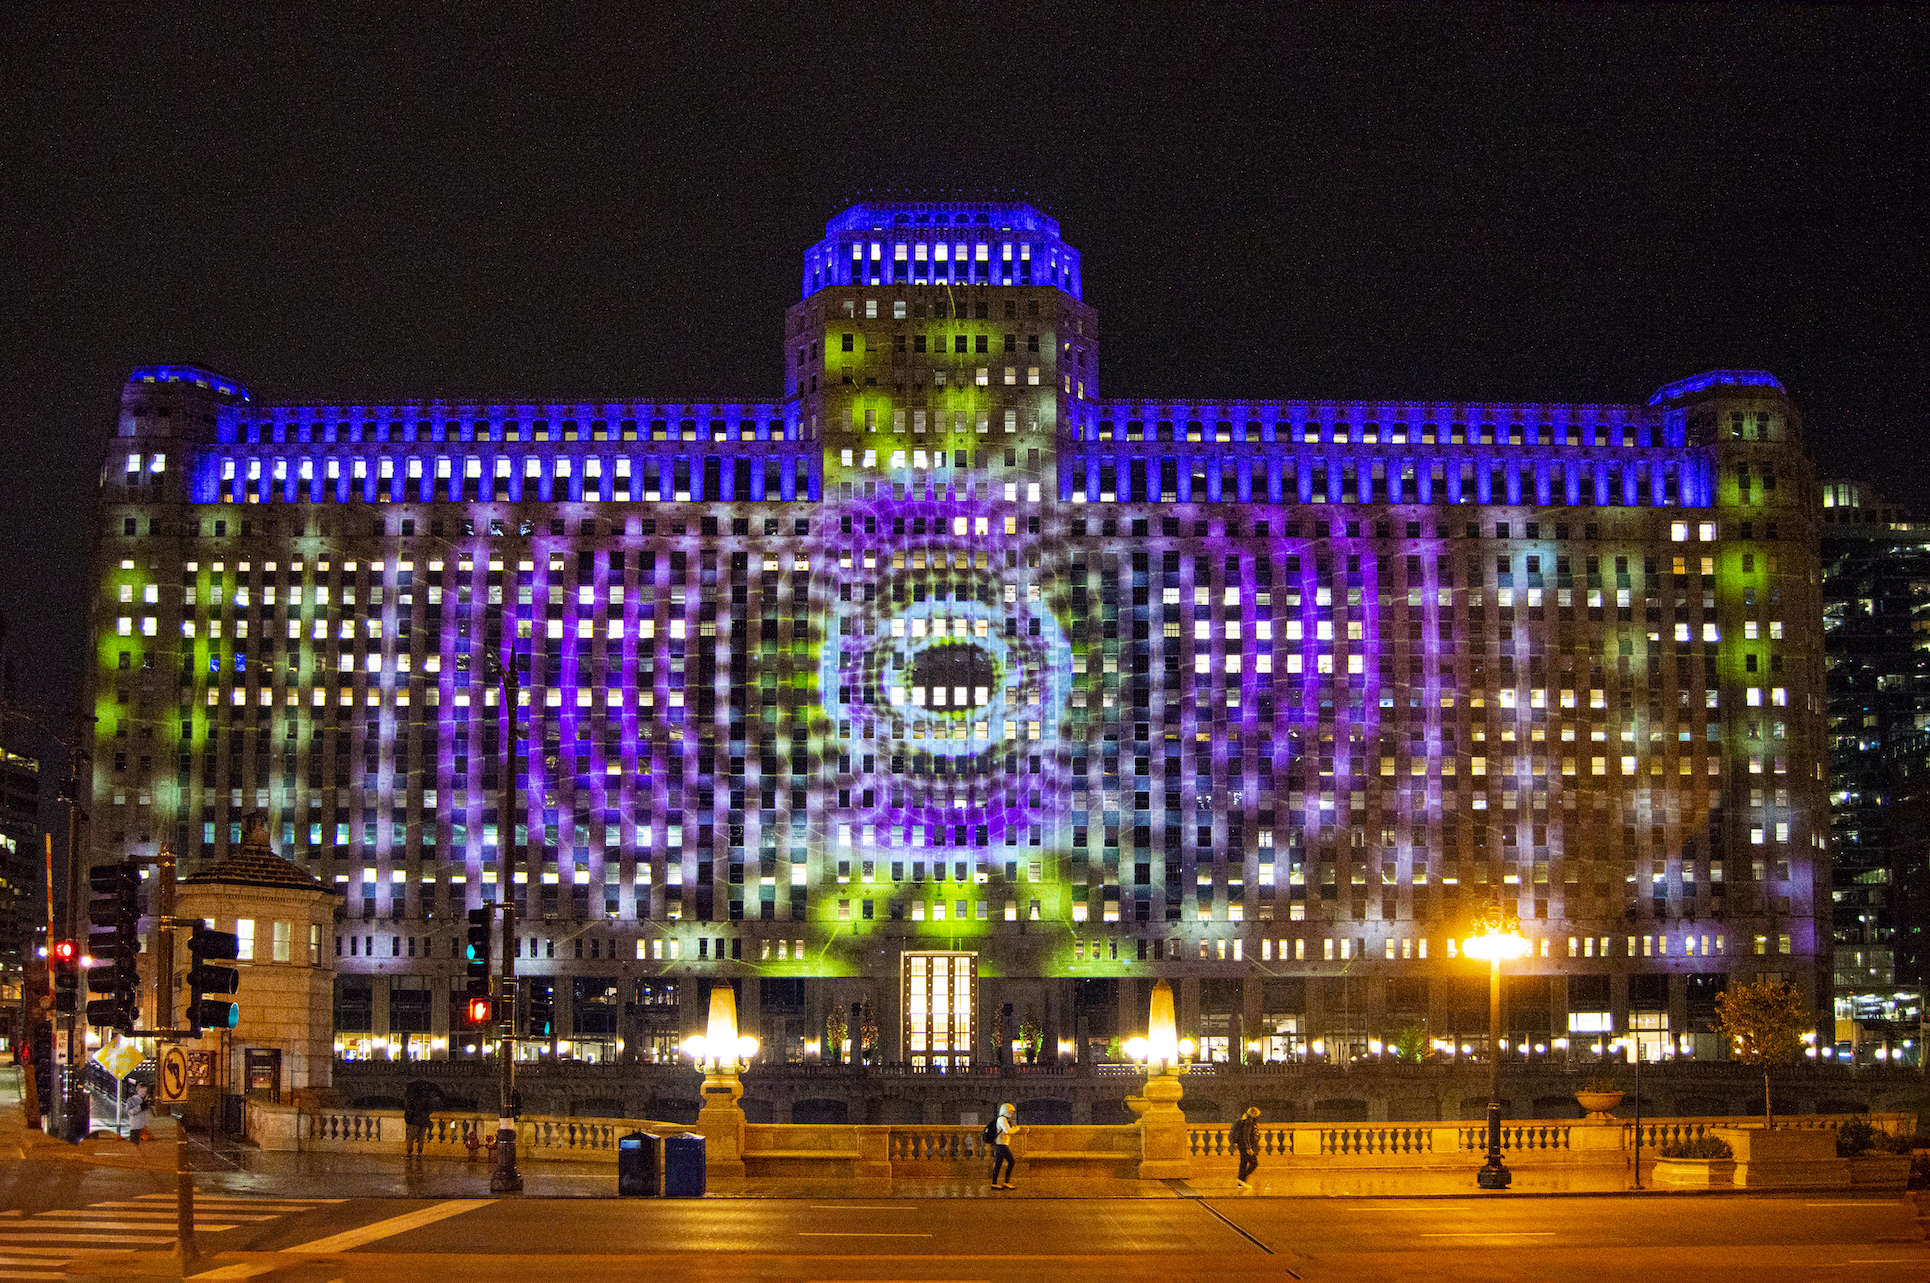 The Adler Planetarium  Astrographics  16. Photography courtesy of Art on theMART